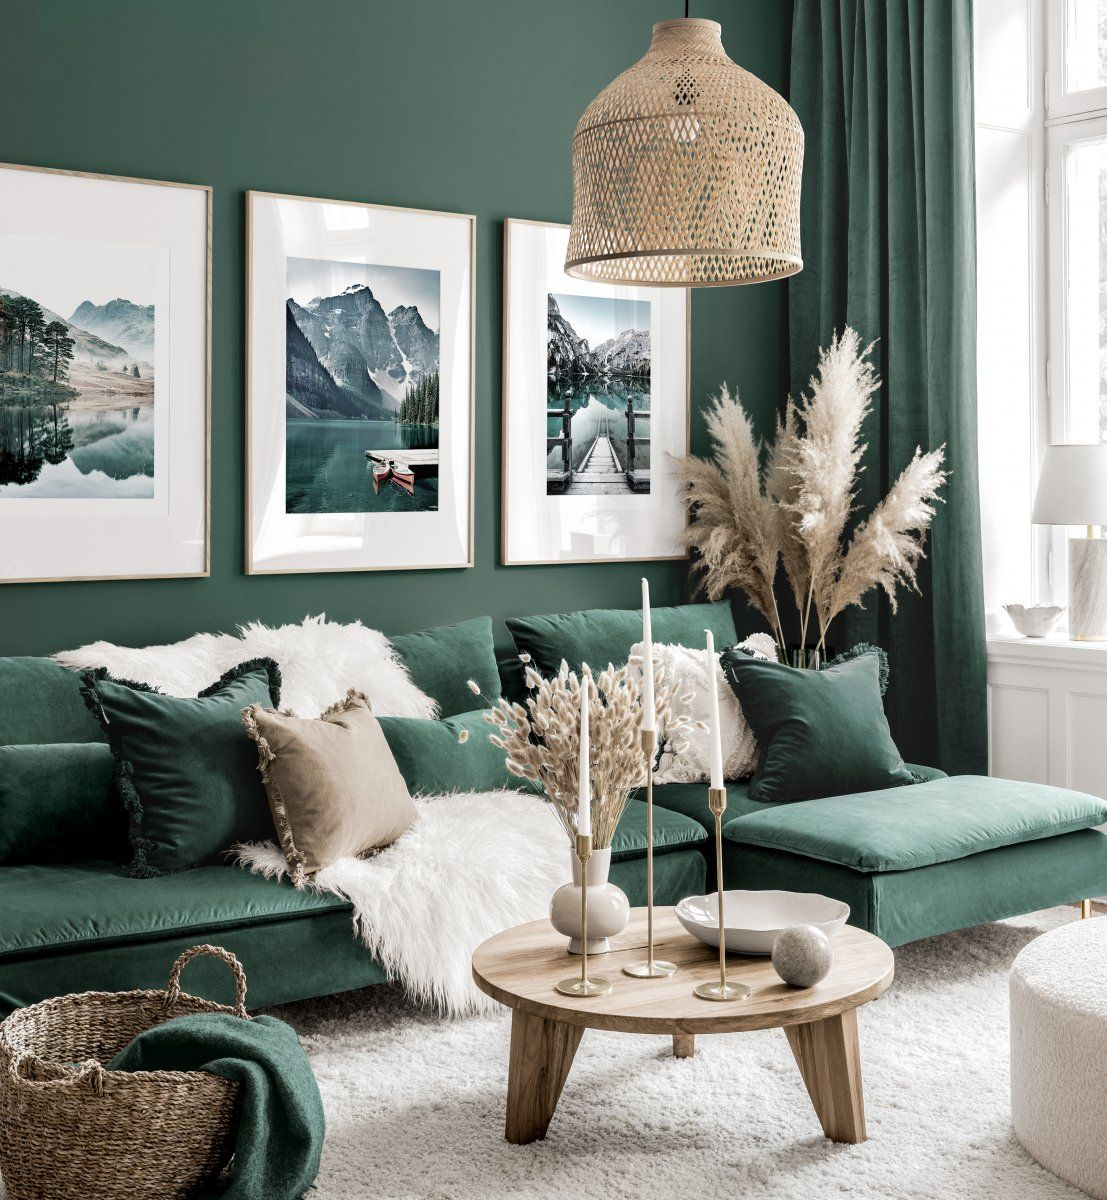 Stunning Gallery Wall Art Green Living Room Nature Posters Oak Frames In 2020 Living Room Green Beautiful Living Rooms Decor Cosy Living Room #photo #frames #living #room